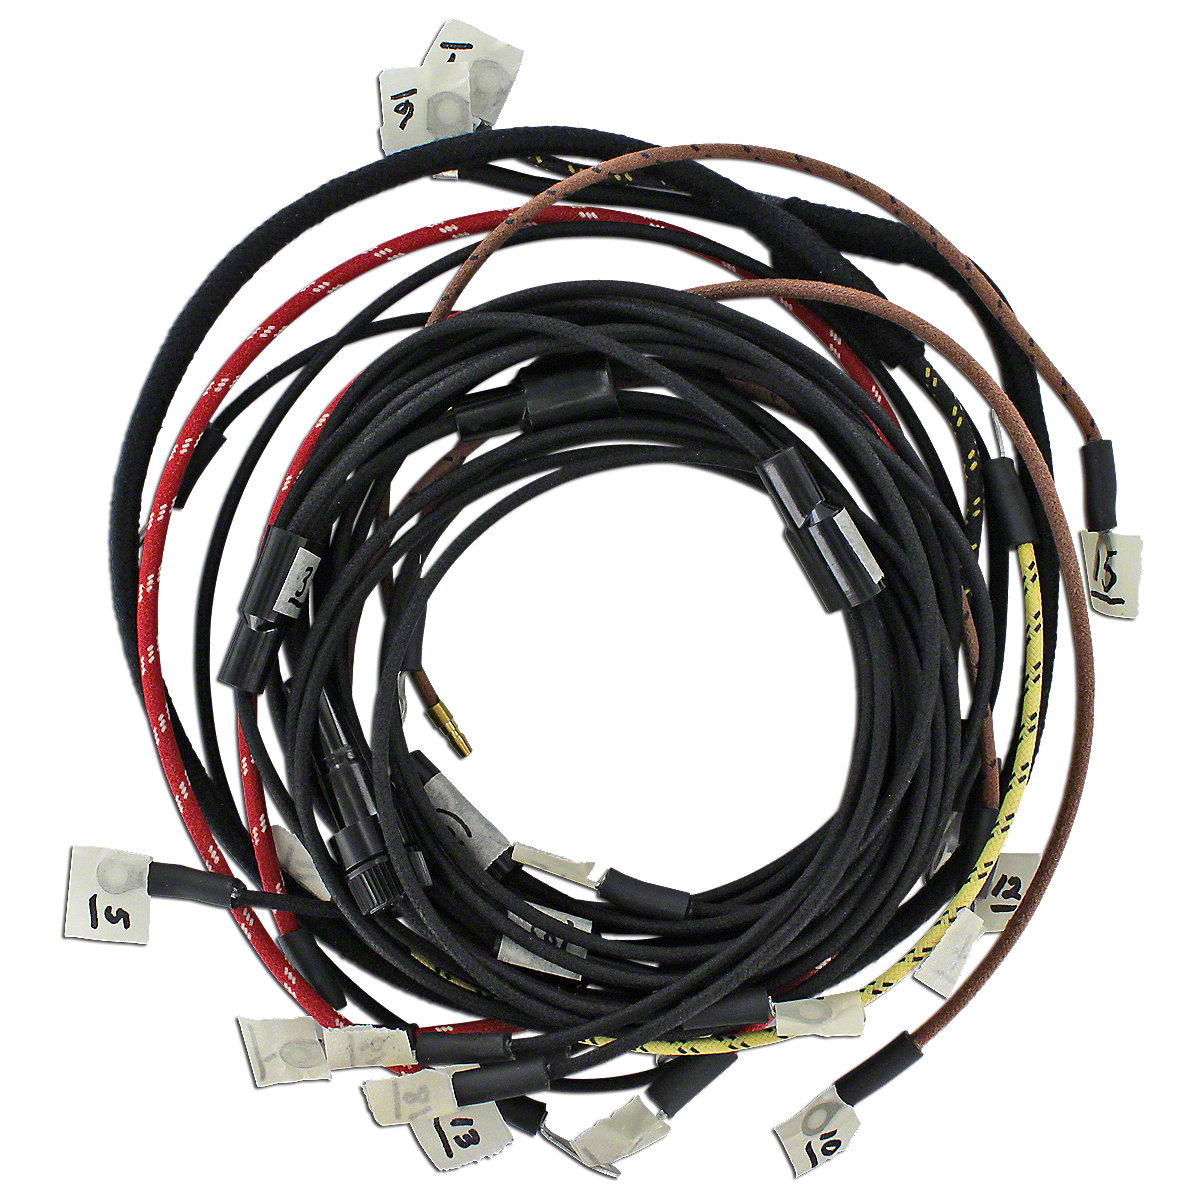 Massey Ferguson Wiring Harness Just Another Diagram Blog F40 149 00 For 65 50 Rh Fergusonparts Com 245 231